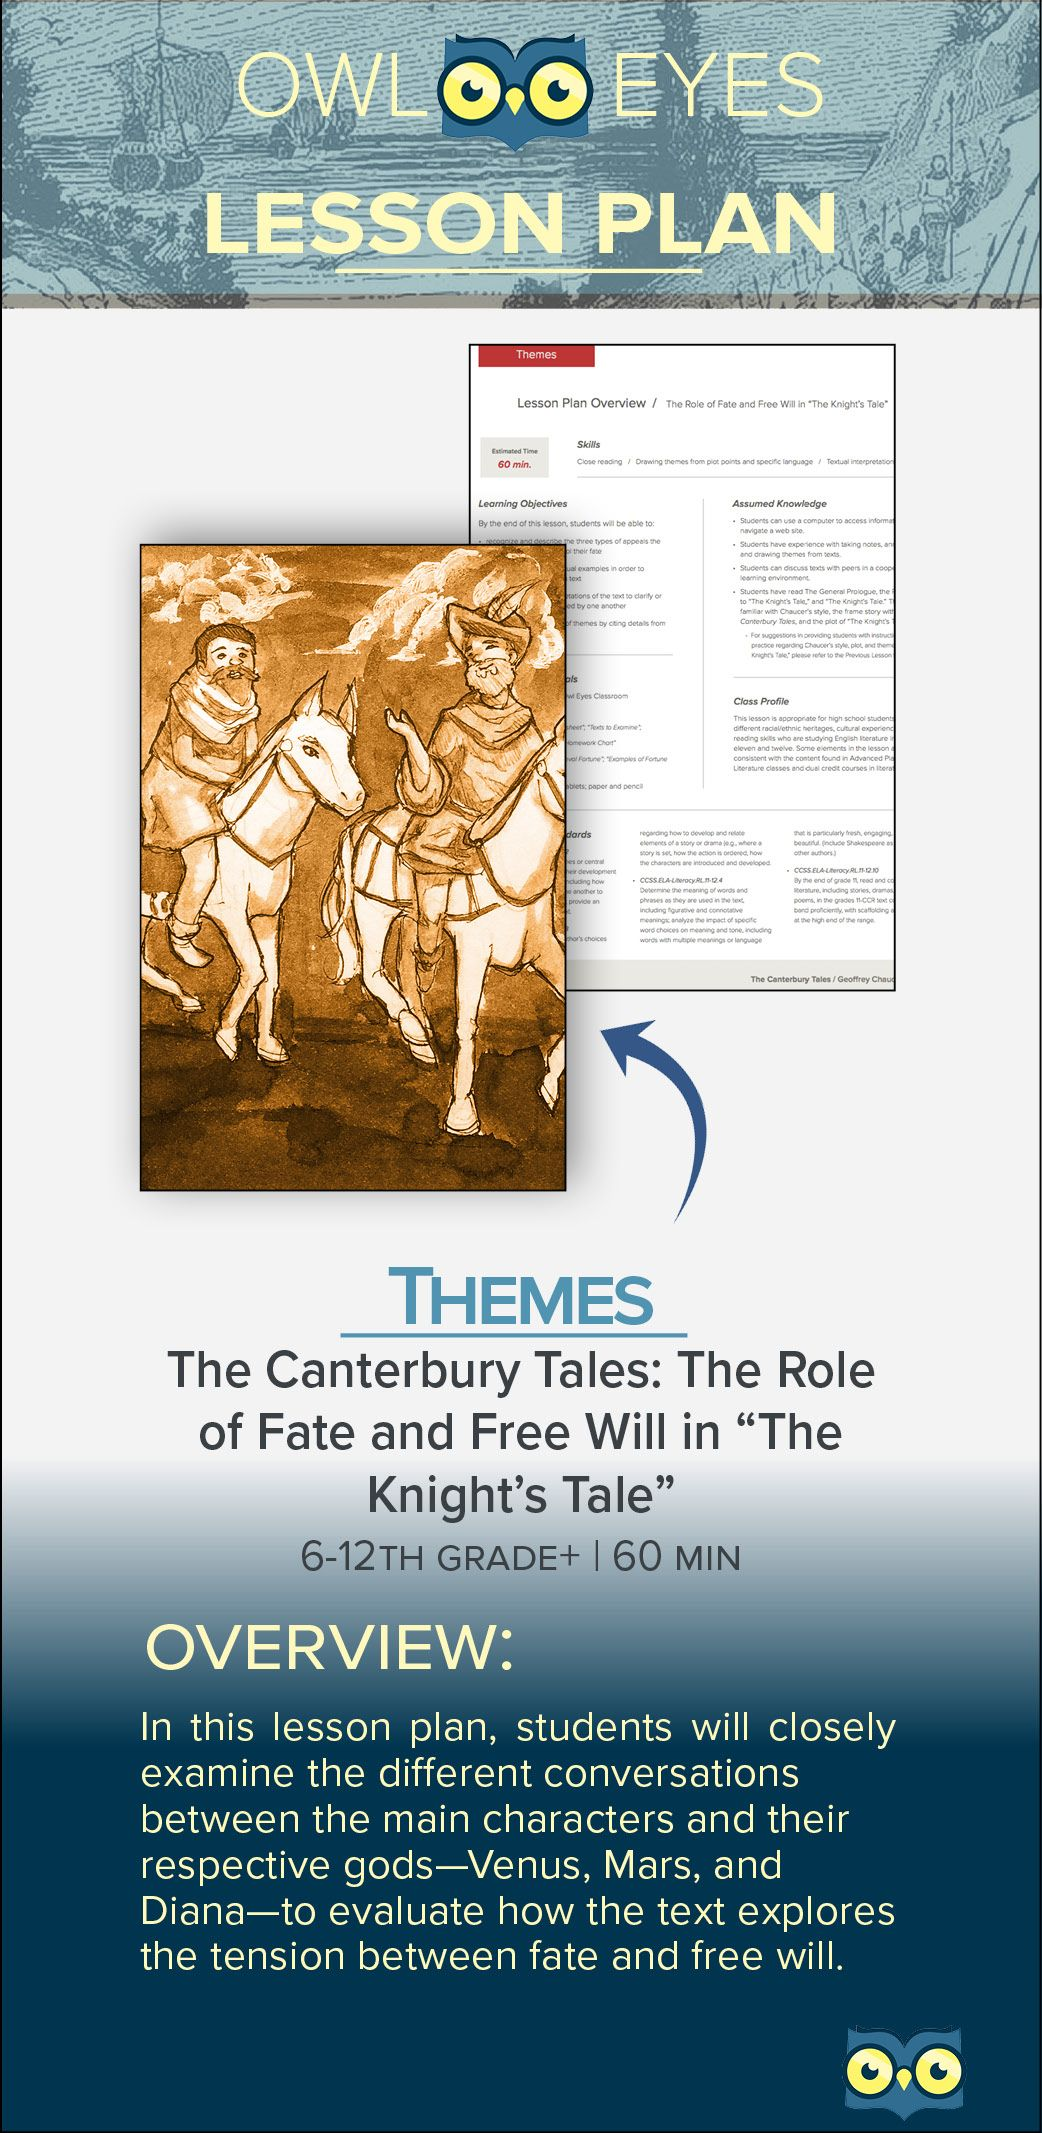 canterbury tales doctor summary essay The canterbury tales was a novel written by geoffery chaucer in 1386 in the prologue to chaucer's work, he describes certain characters using the literary device known as satire.